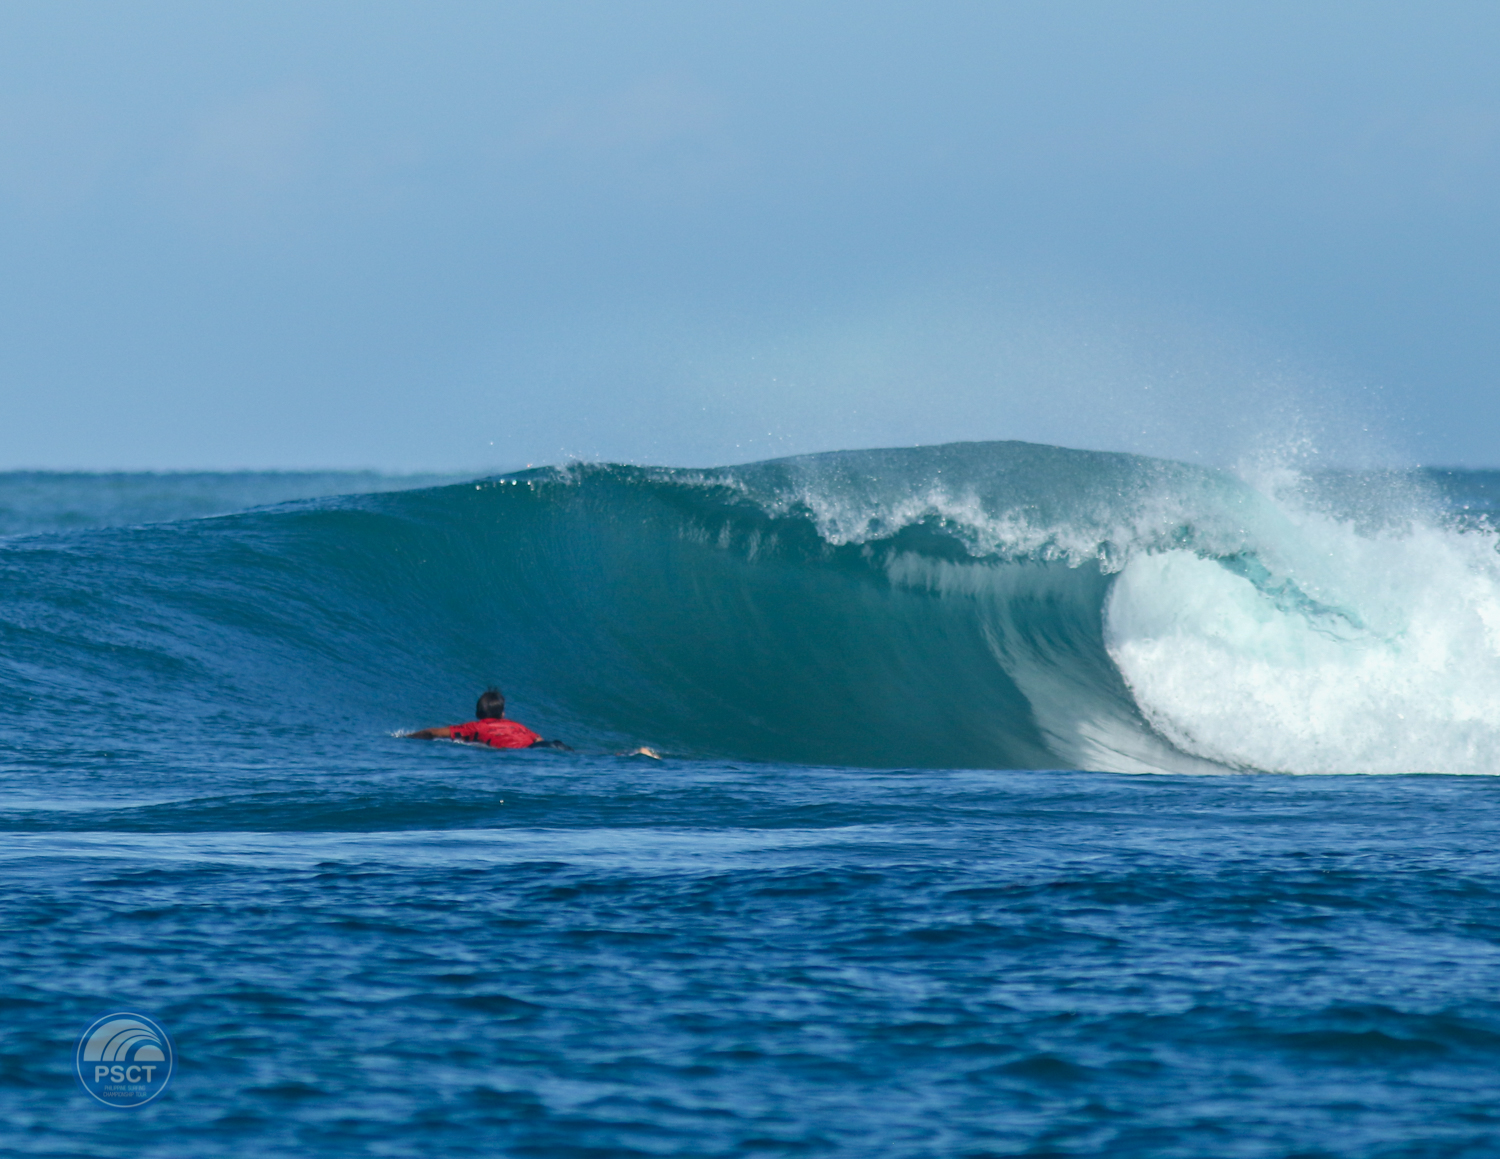 Look at those waves! Cabugao was unforgettable. Photo by Abdel Elecho/PSCT.